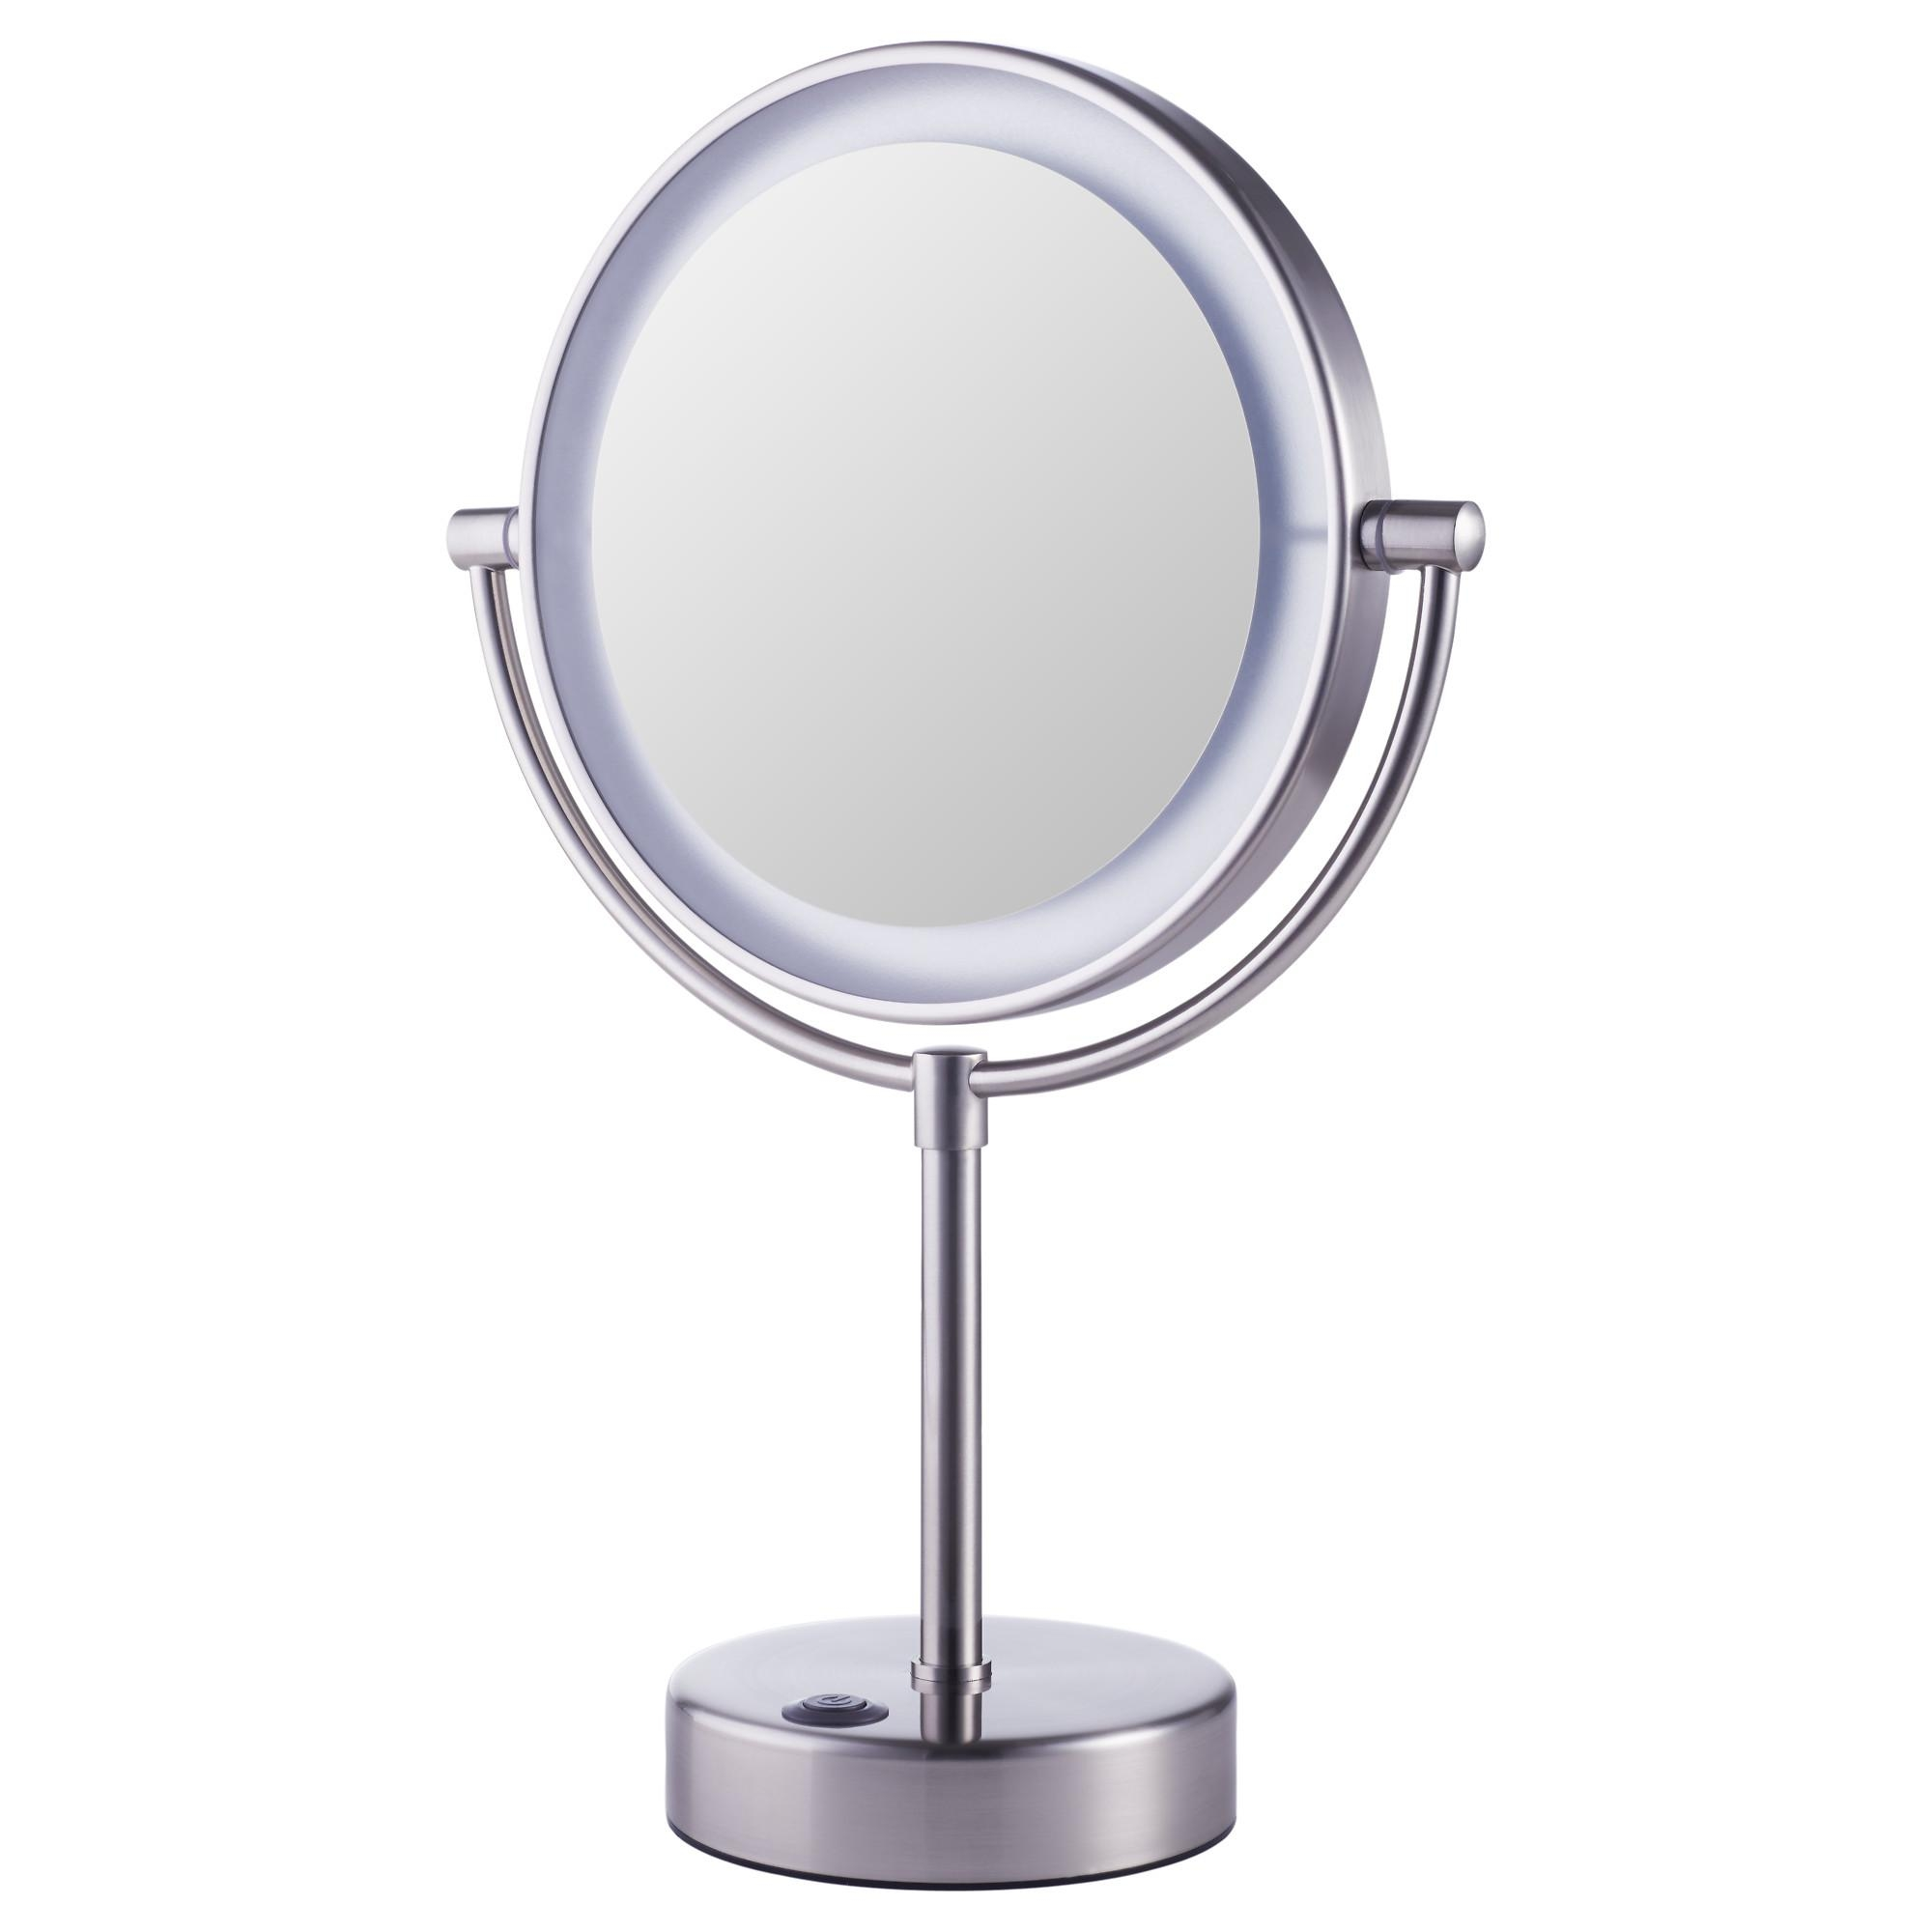 Kaitum Mirror With Built In Light – Ikea Intended For Vanity Mirrors With Built In Lights (View 16 of 20)